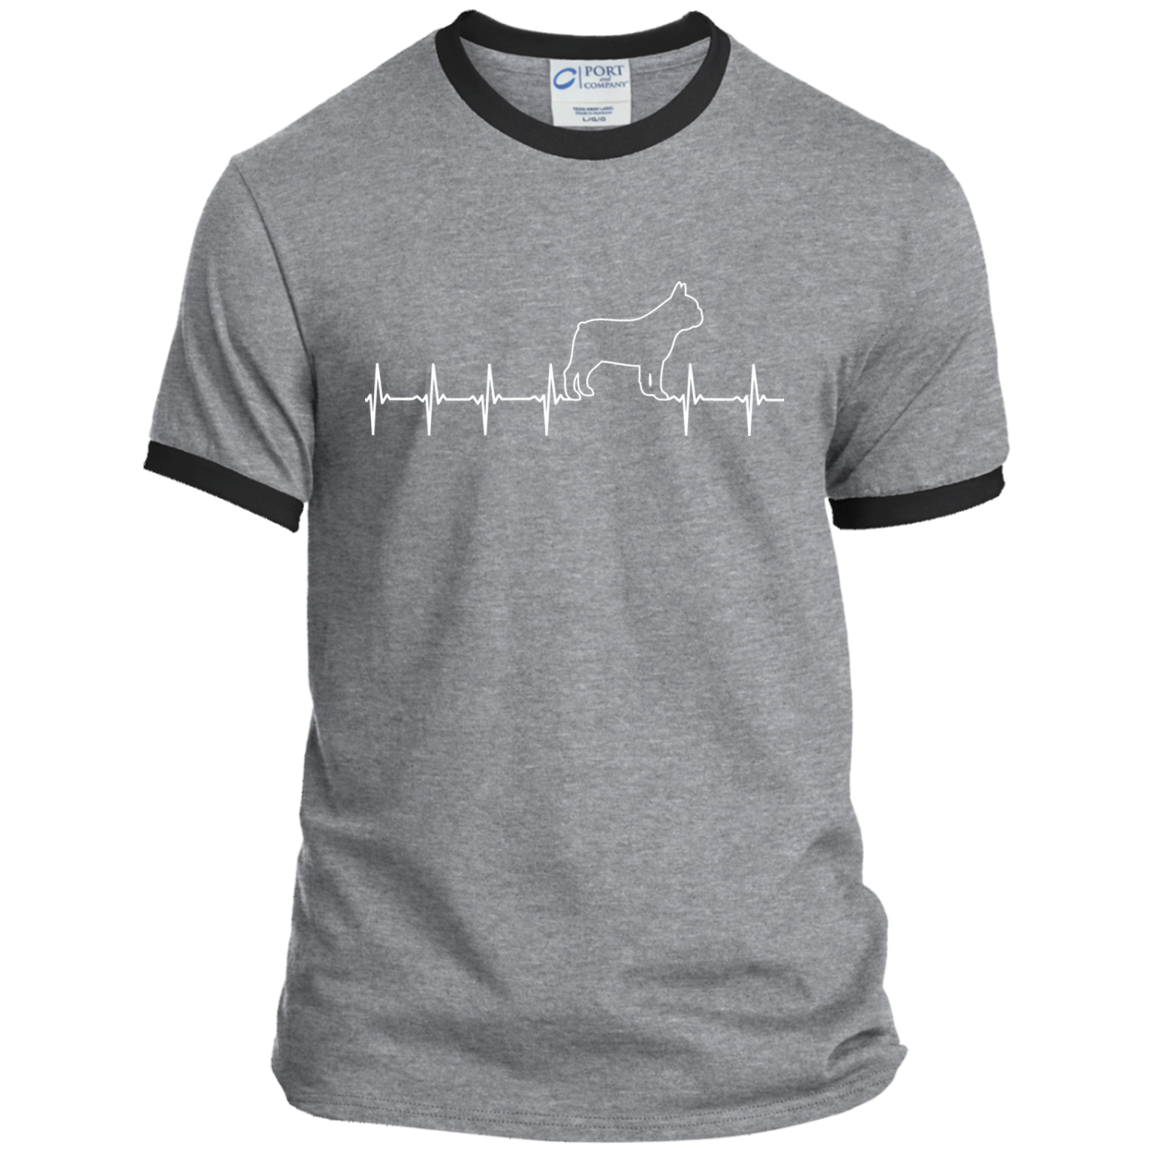 French Bulldog Heartbeat Ringer Tee - Men's T-Shirts I Love Frenchie Bulldogs